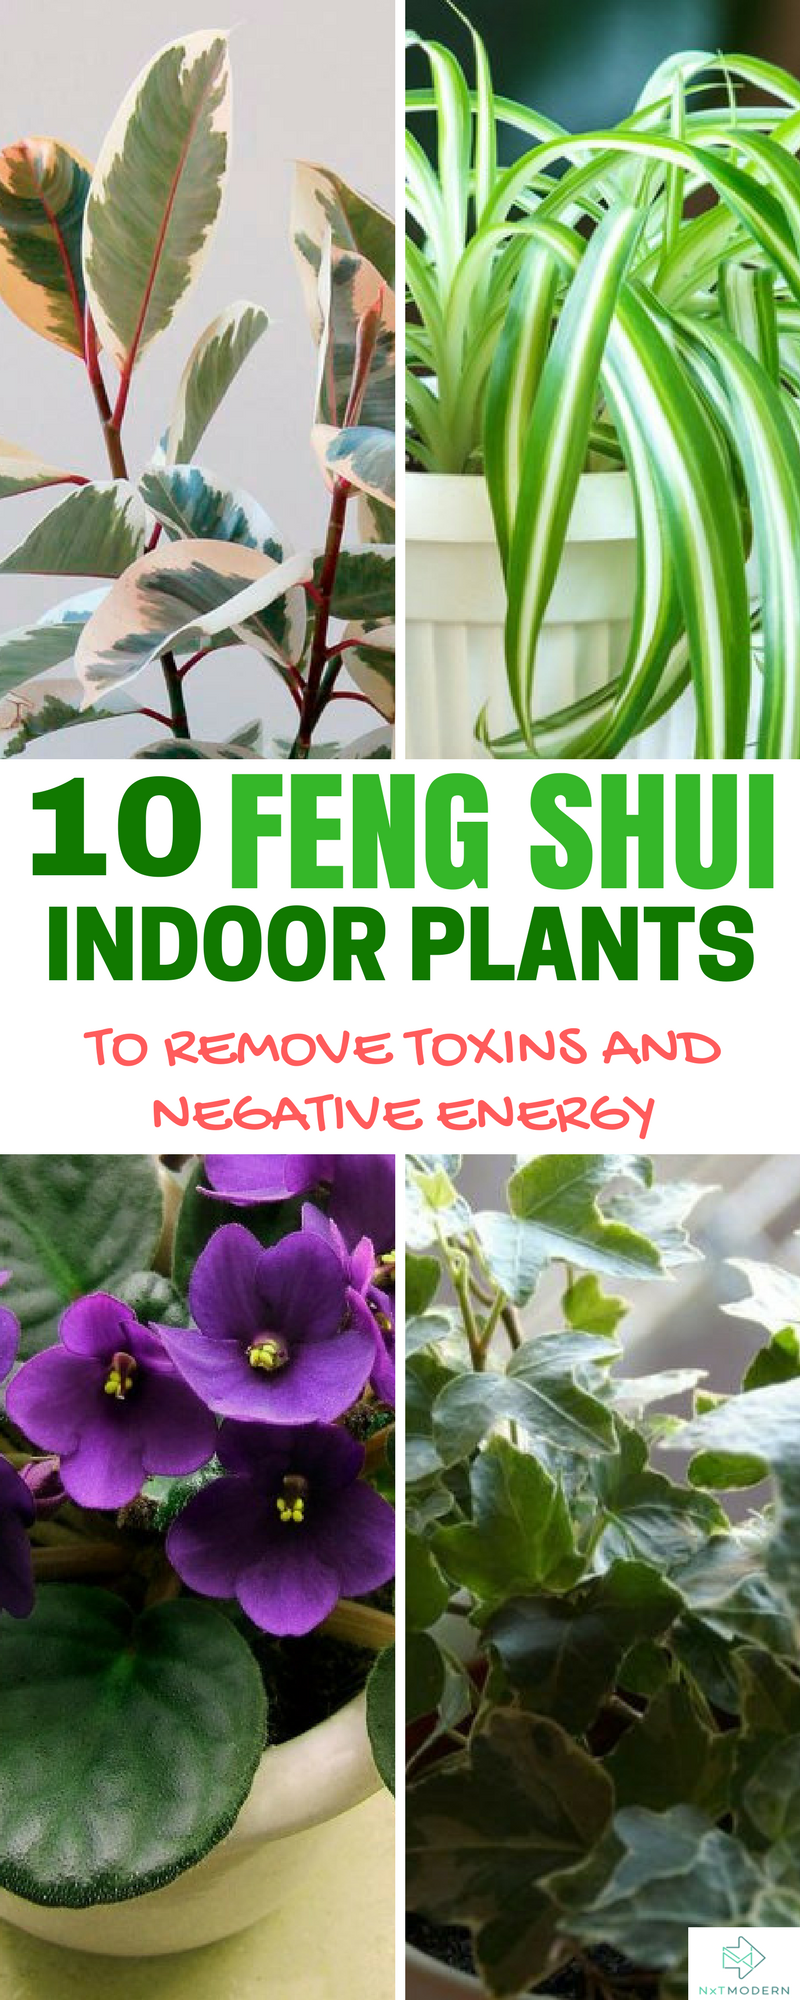 Fen Shui 10 Feng Shui Indoor Plants To Spruce Up Your Interior Decor